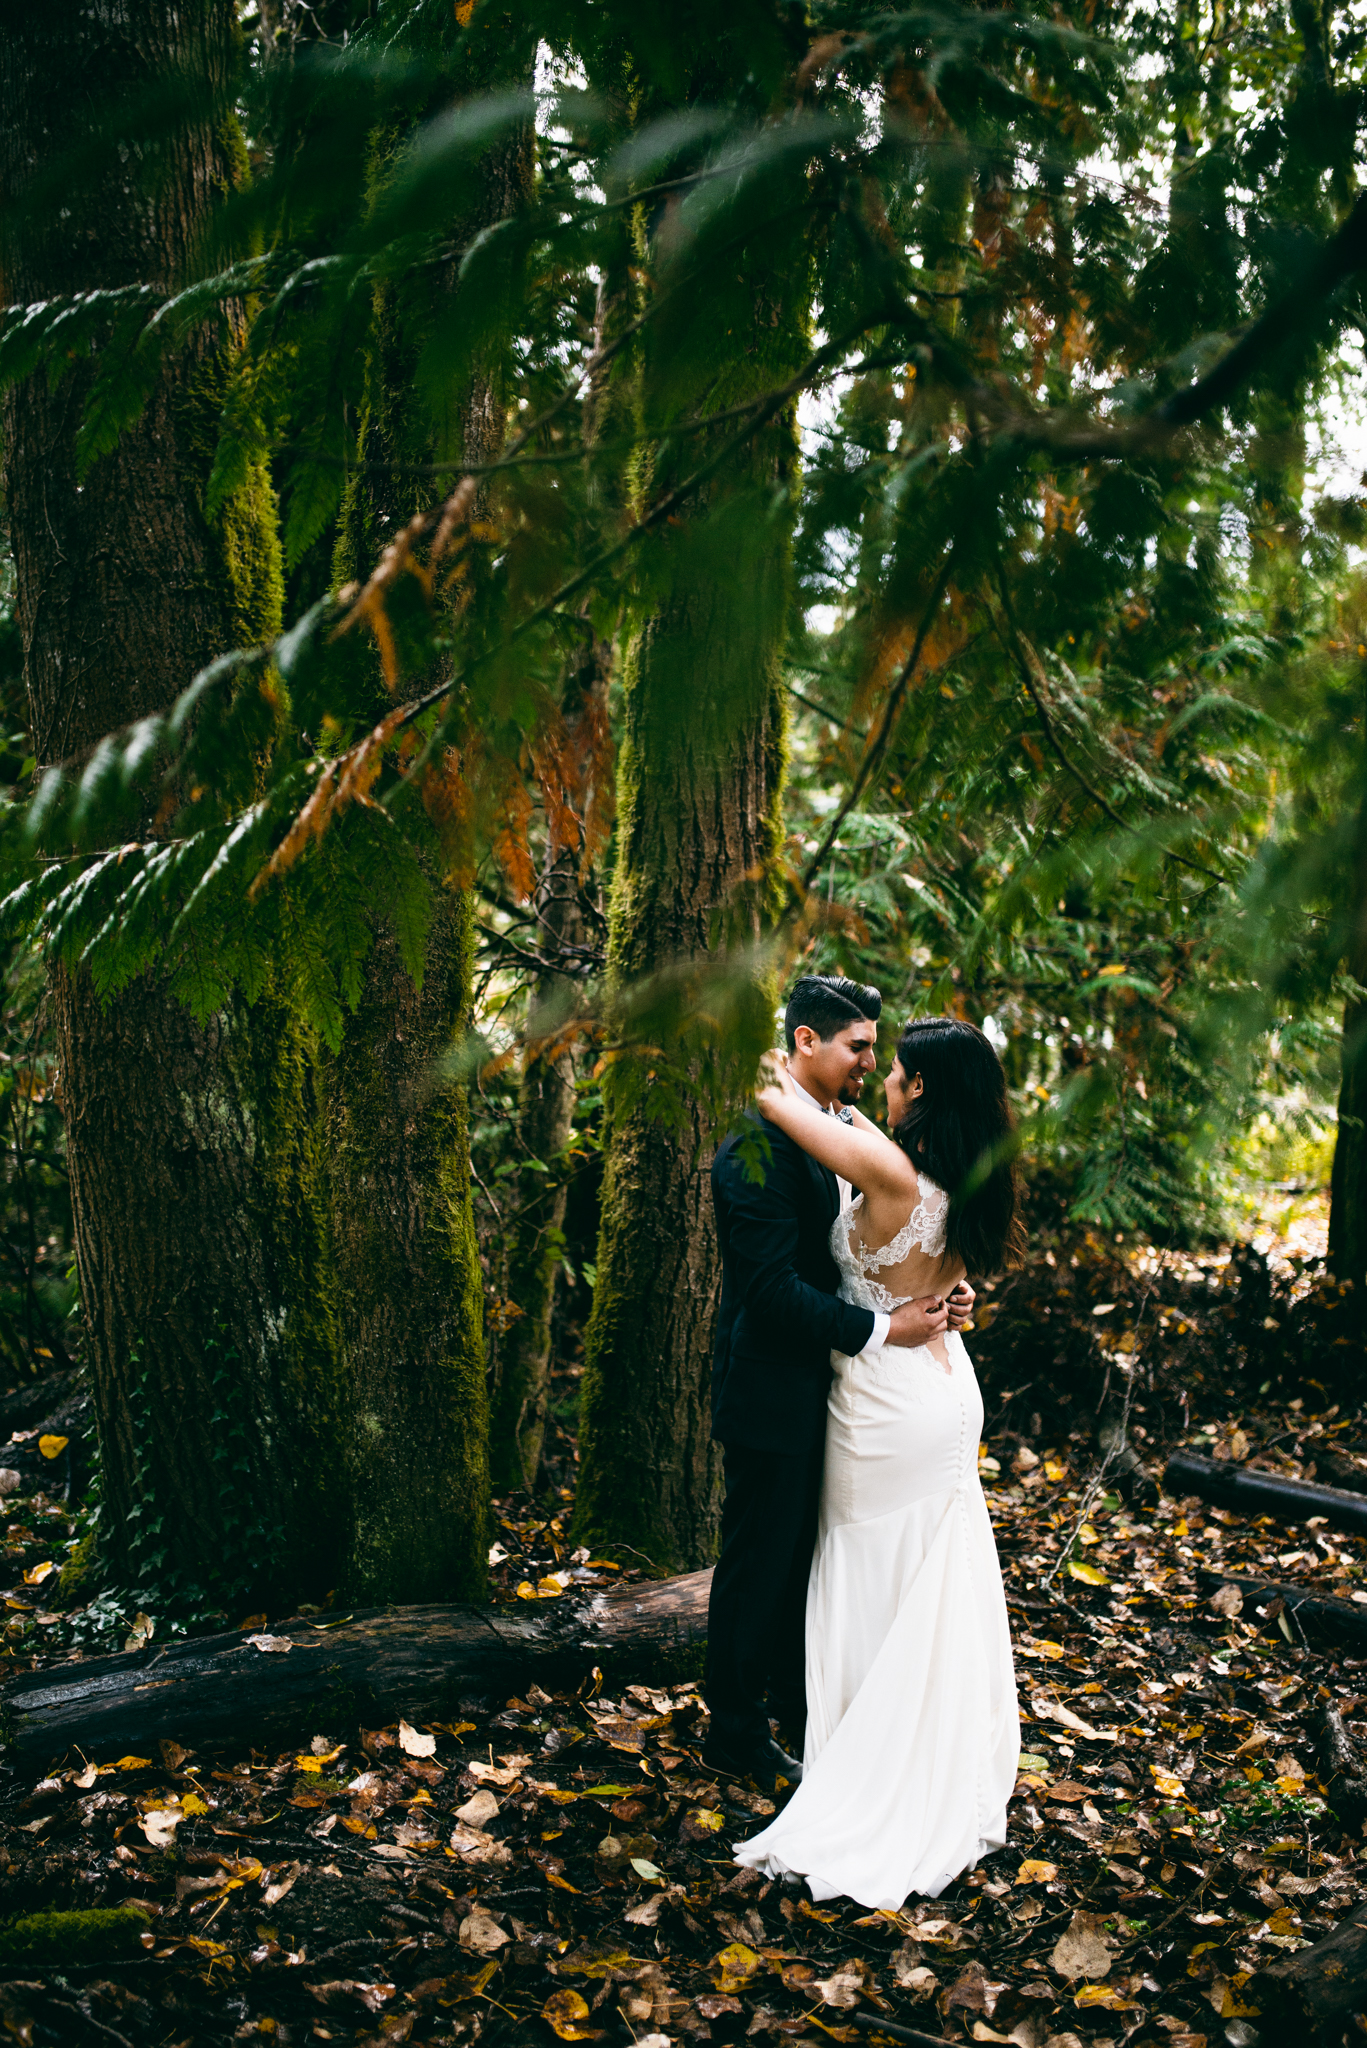 ©Isaiah & Taylor Photography - Los Angeles Wedding - Snoqualmie, Washington Honeymoon-043.jpg